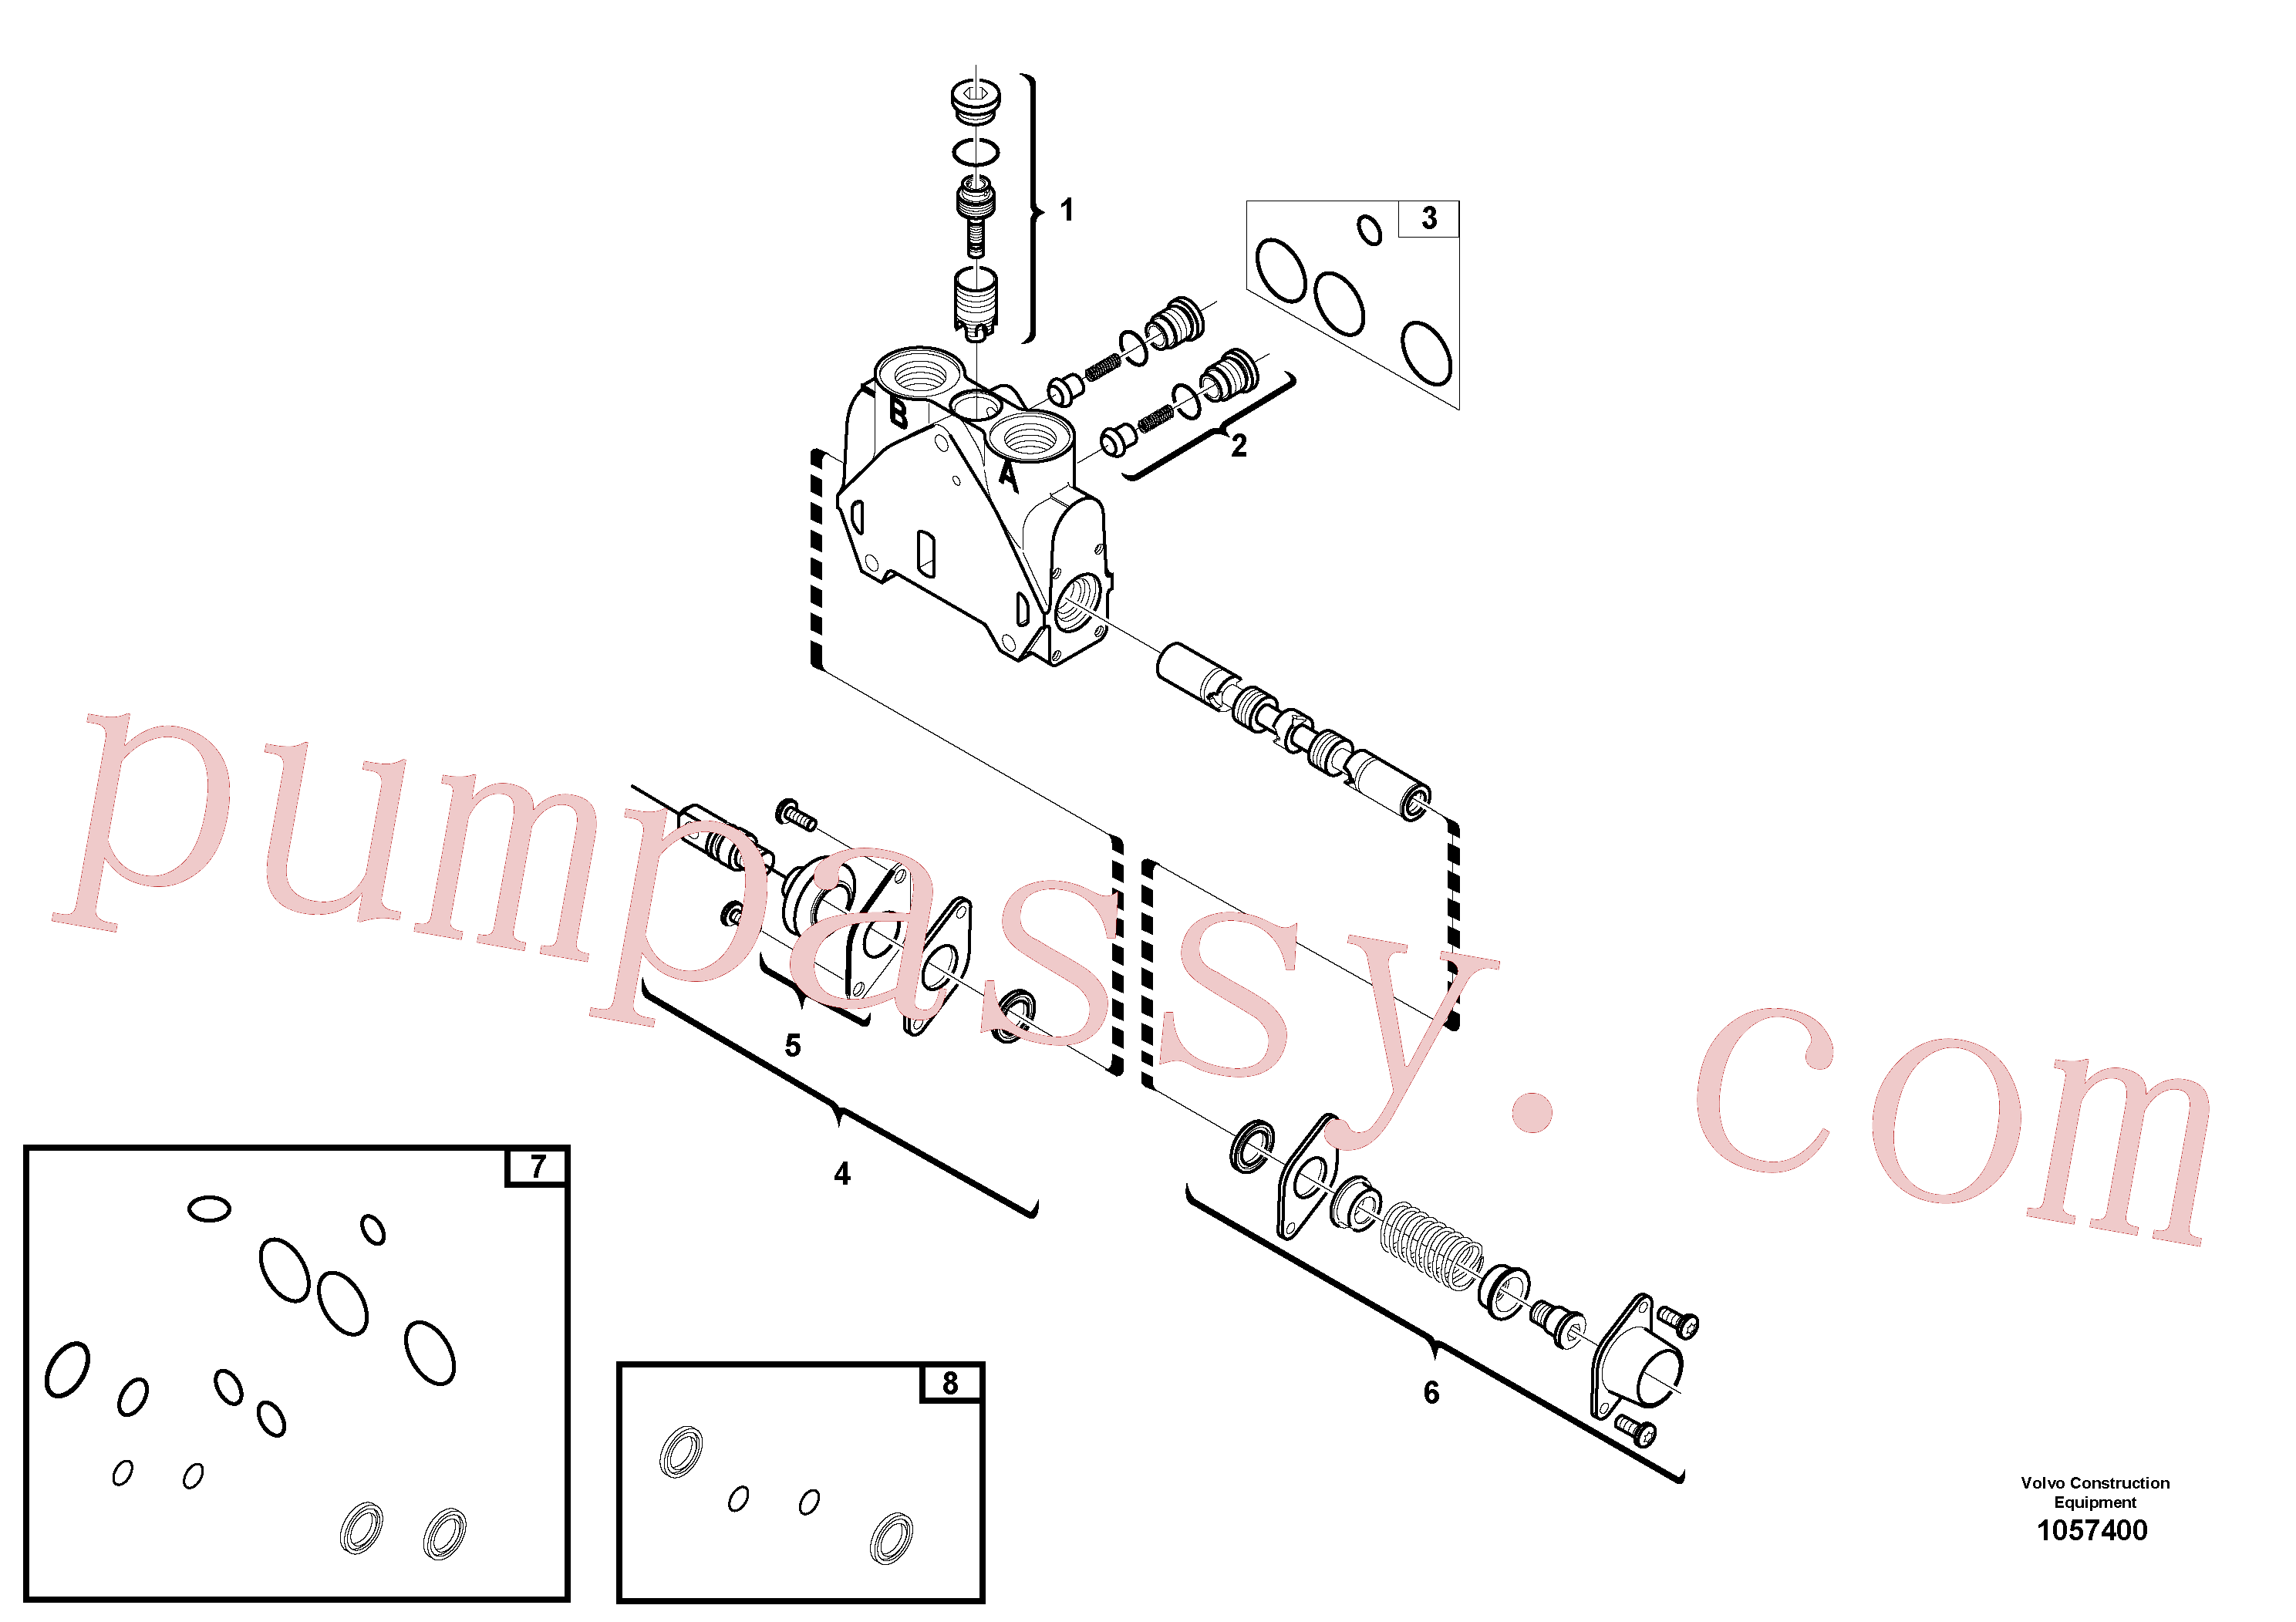 VOE11712623 for Volvo Valve section(1057400 assembly)